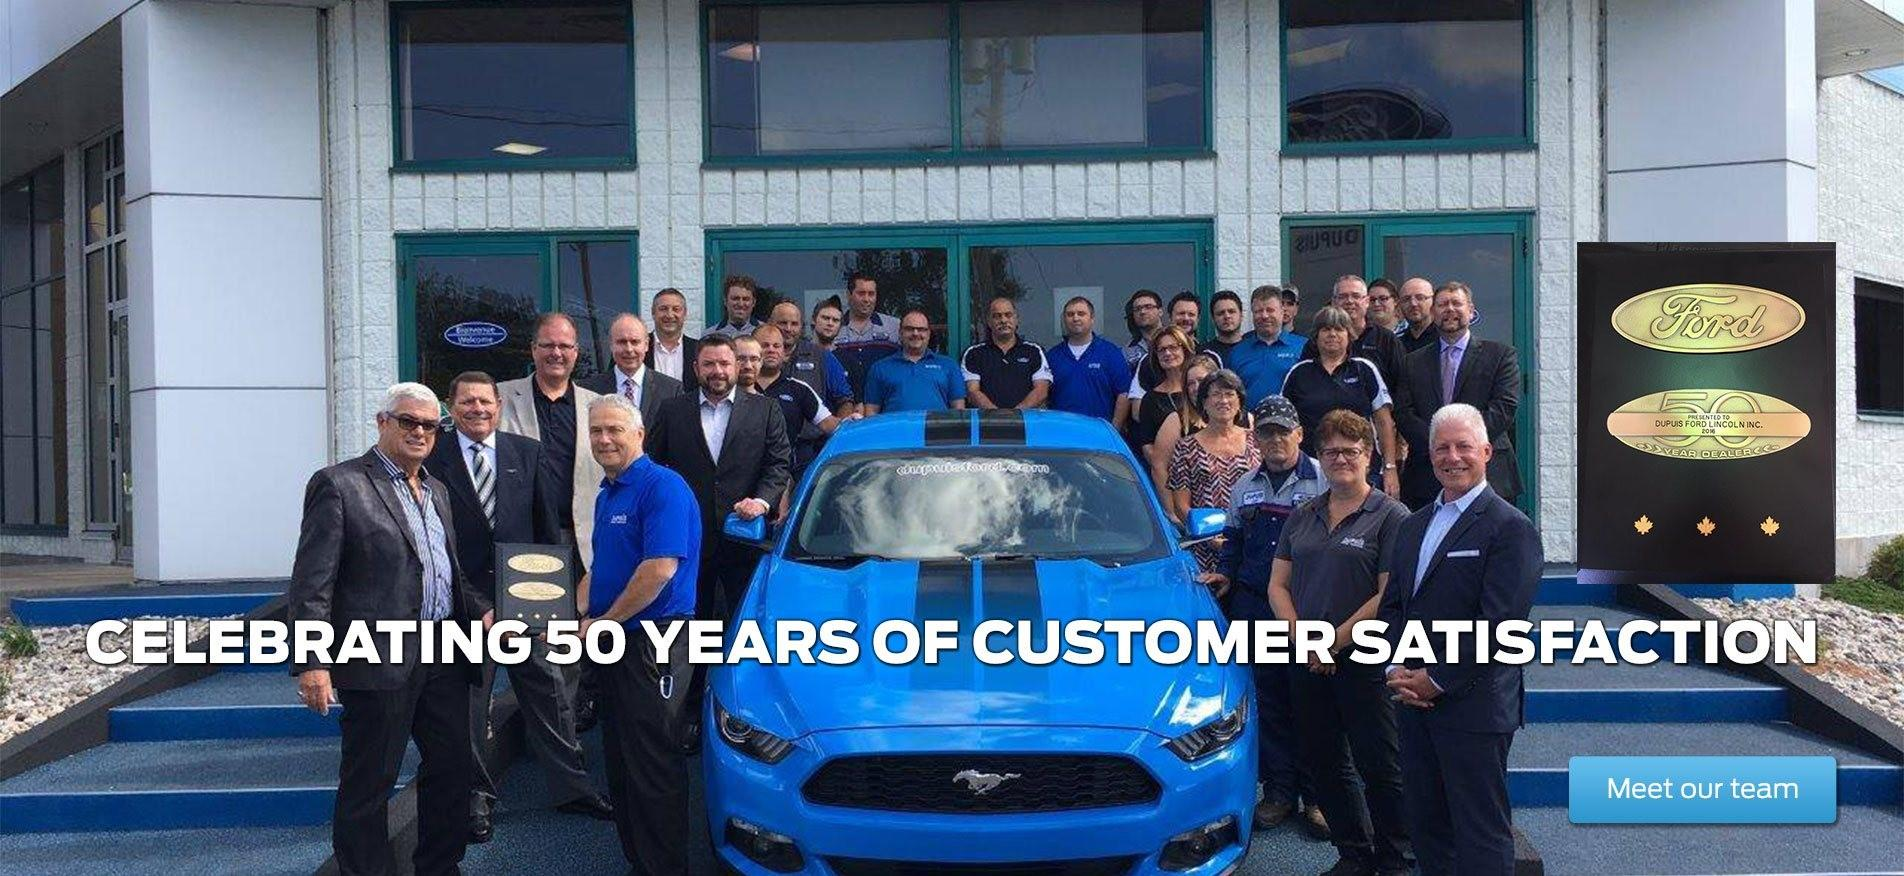 Dupuis Ford - Celebrating 50 Years